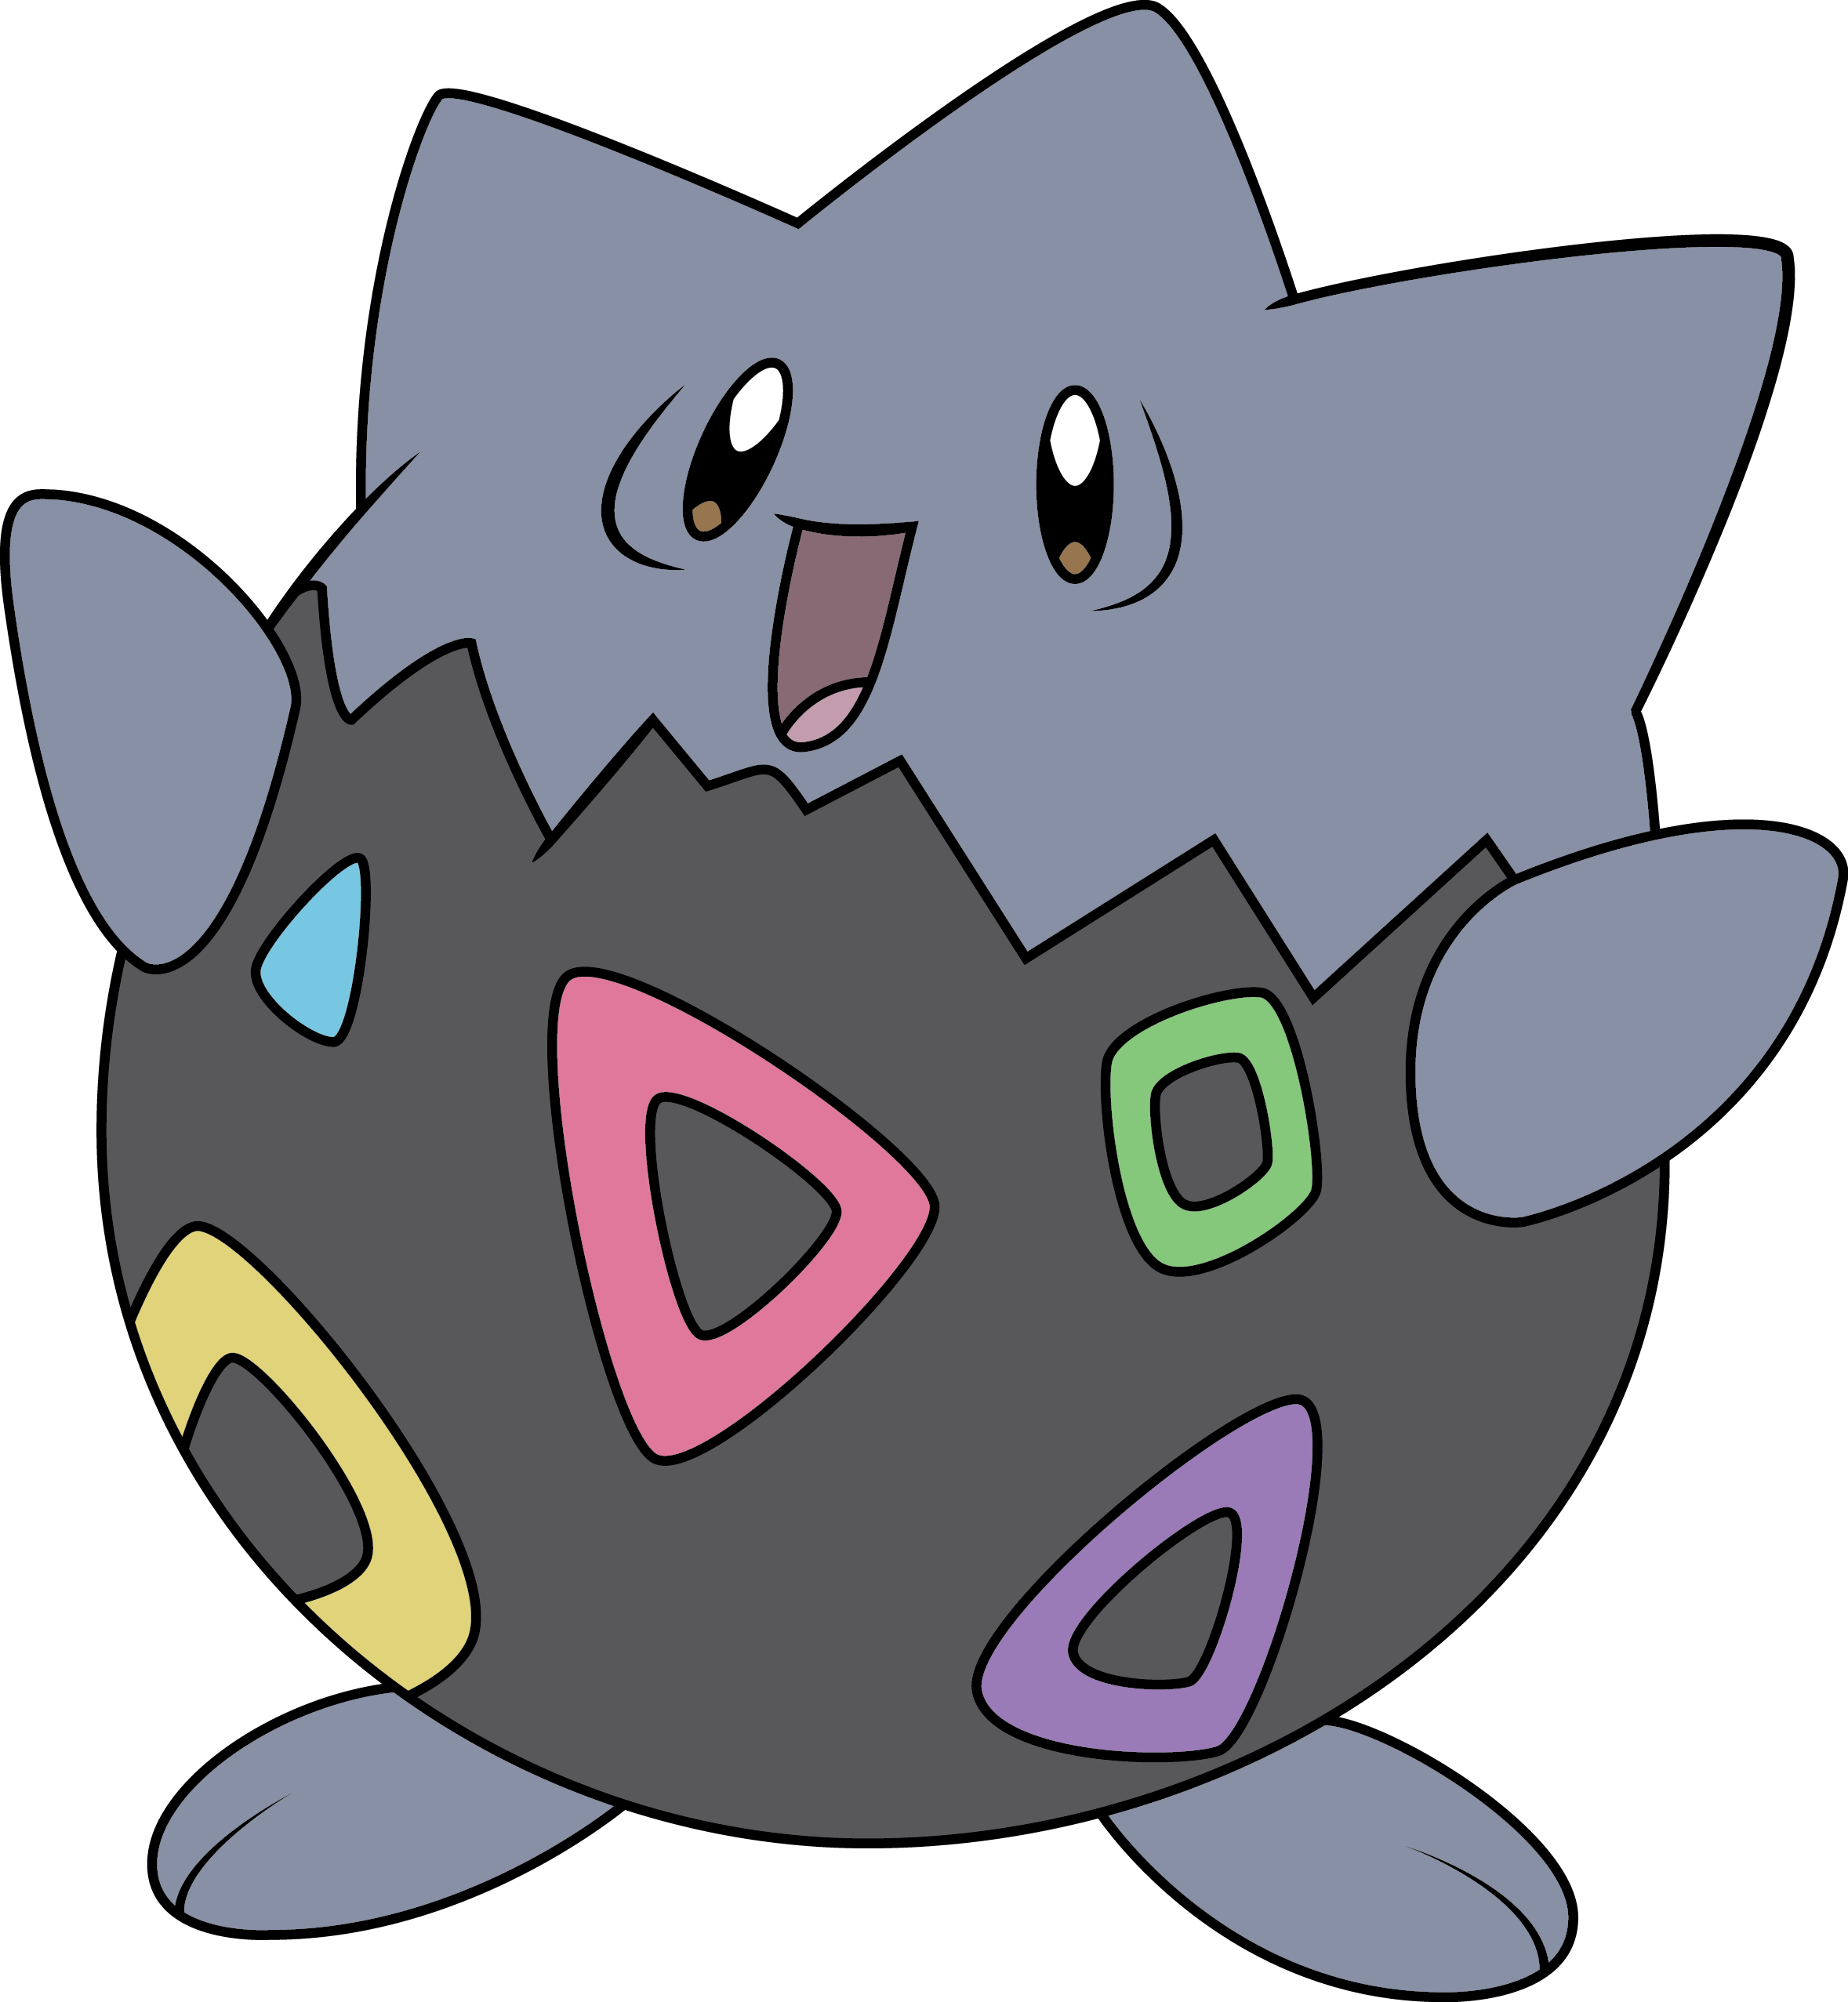 Helicopter clipart soft loud sound. A better shiny togepi